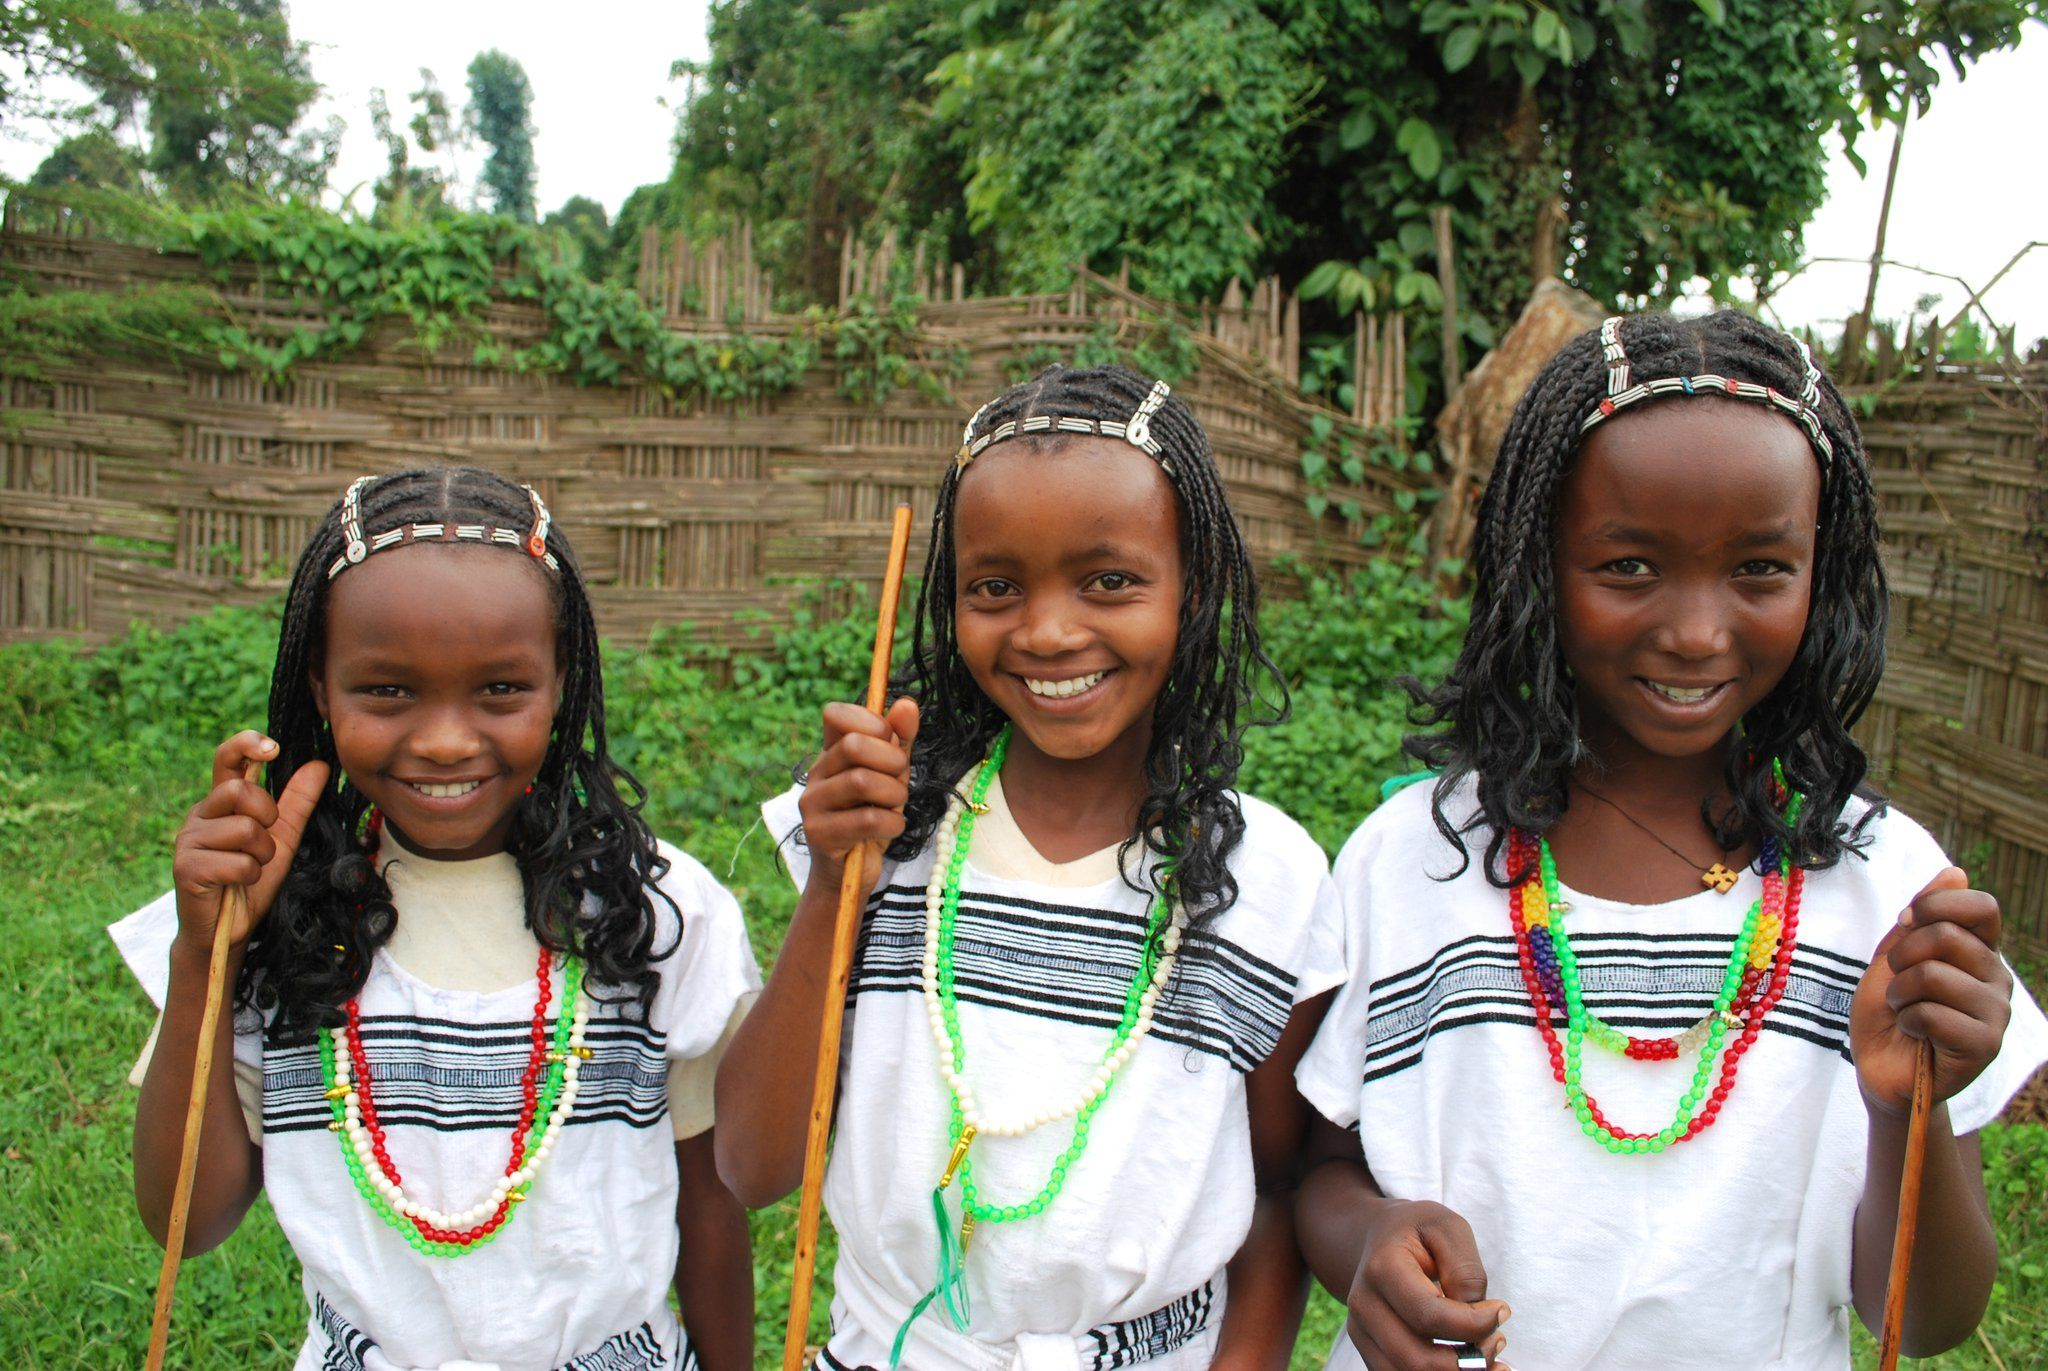 Pin by Priscilla on Culture   African people, World